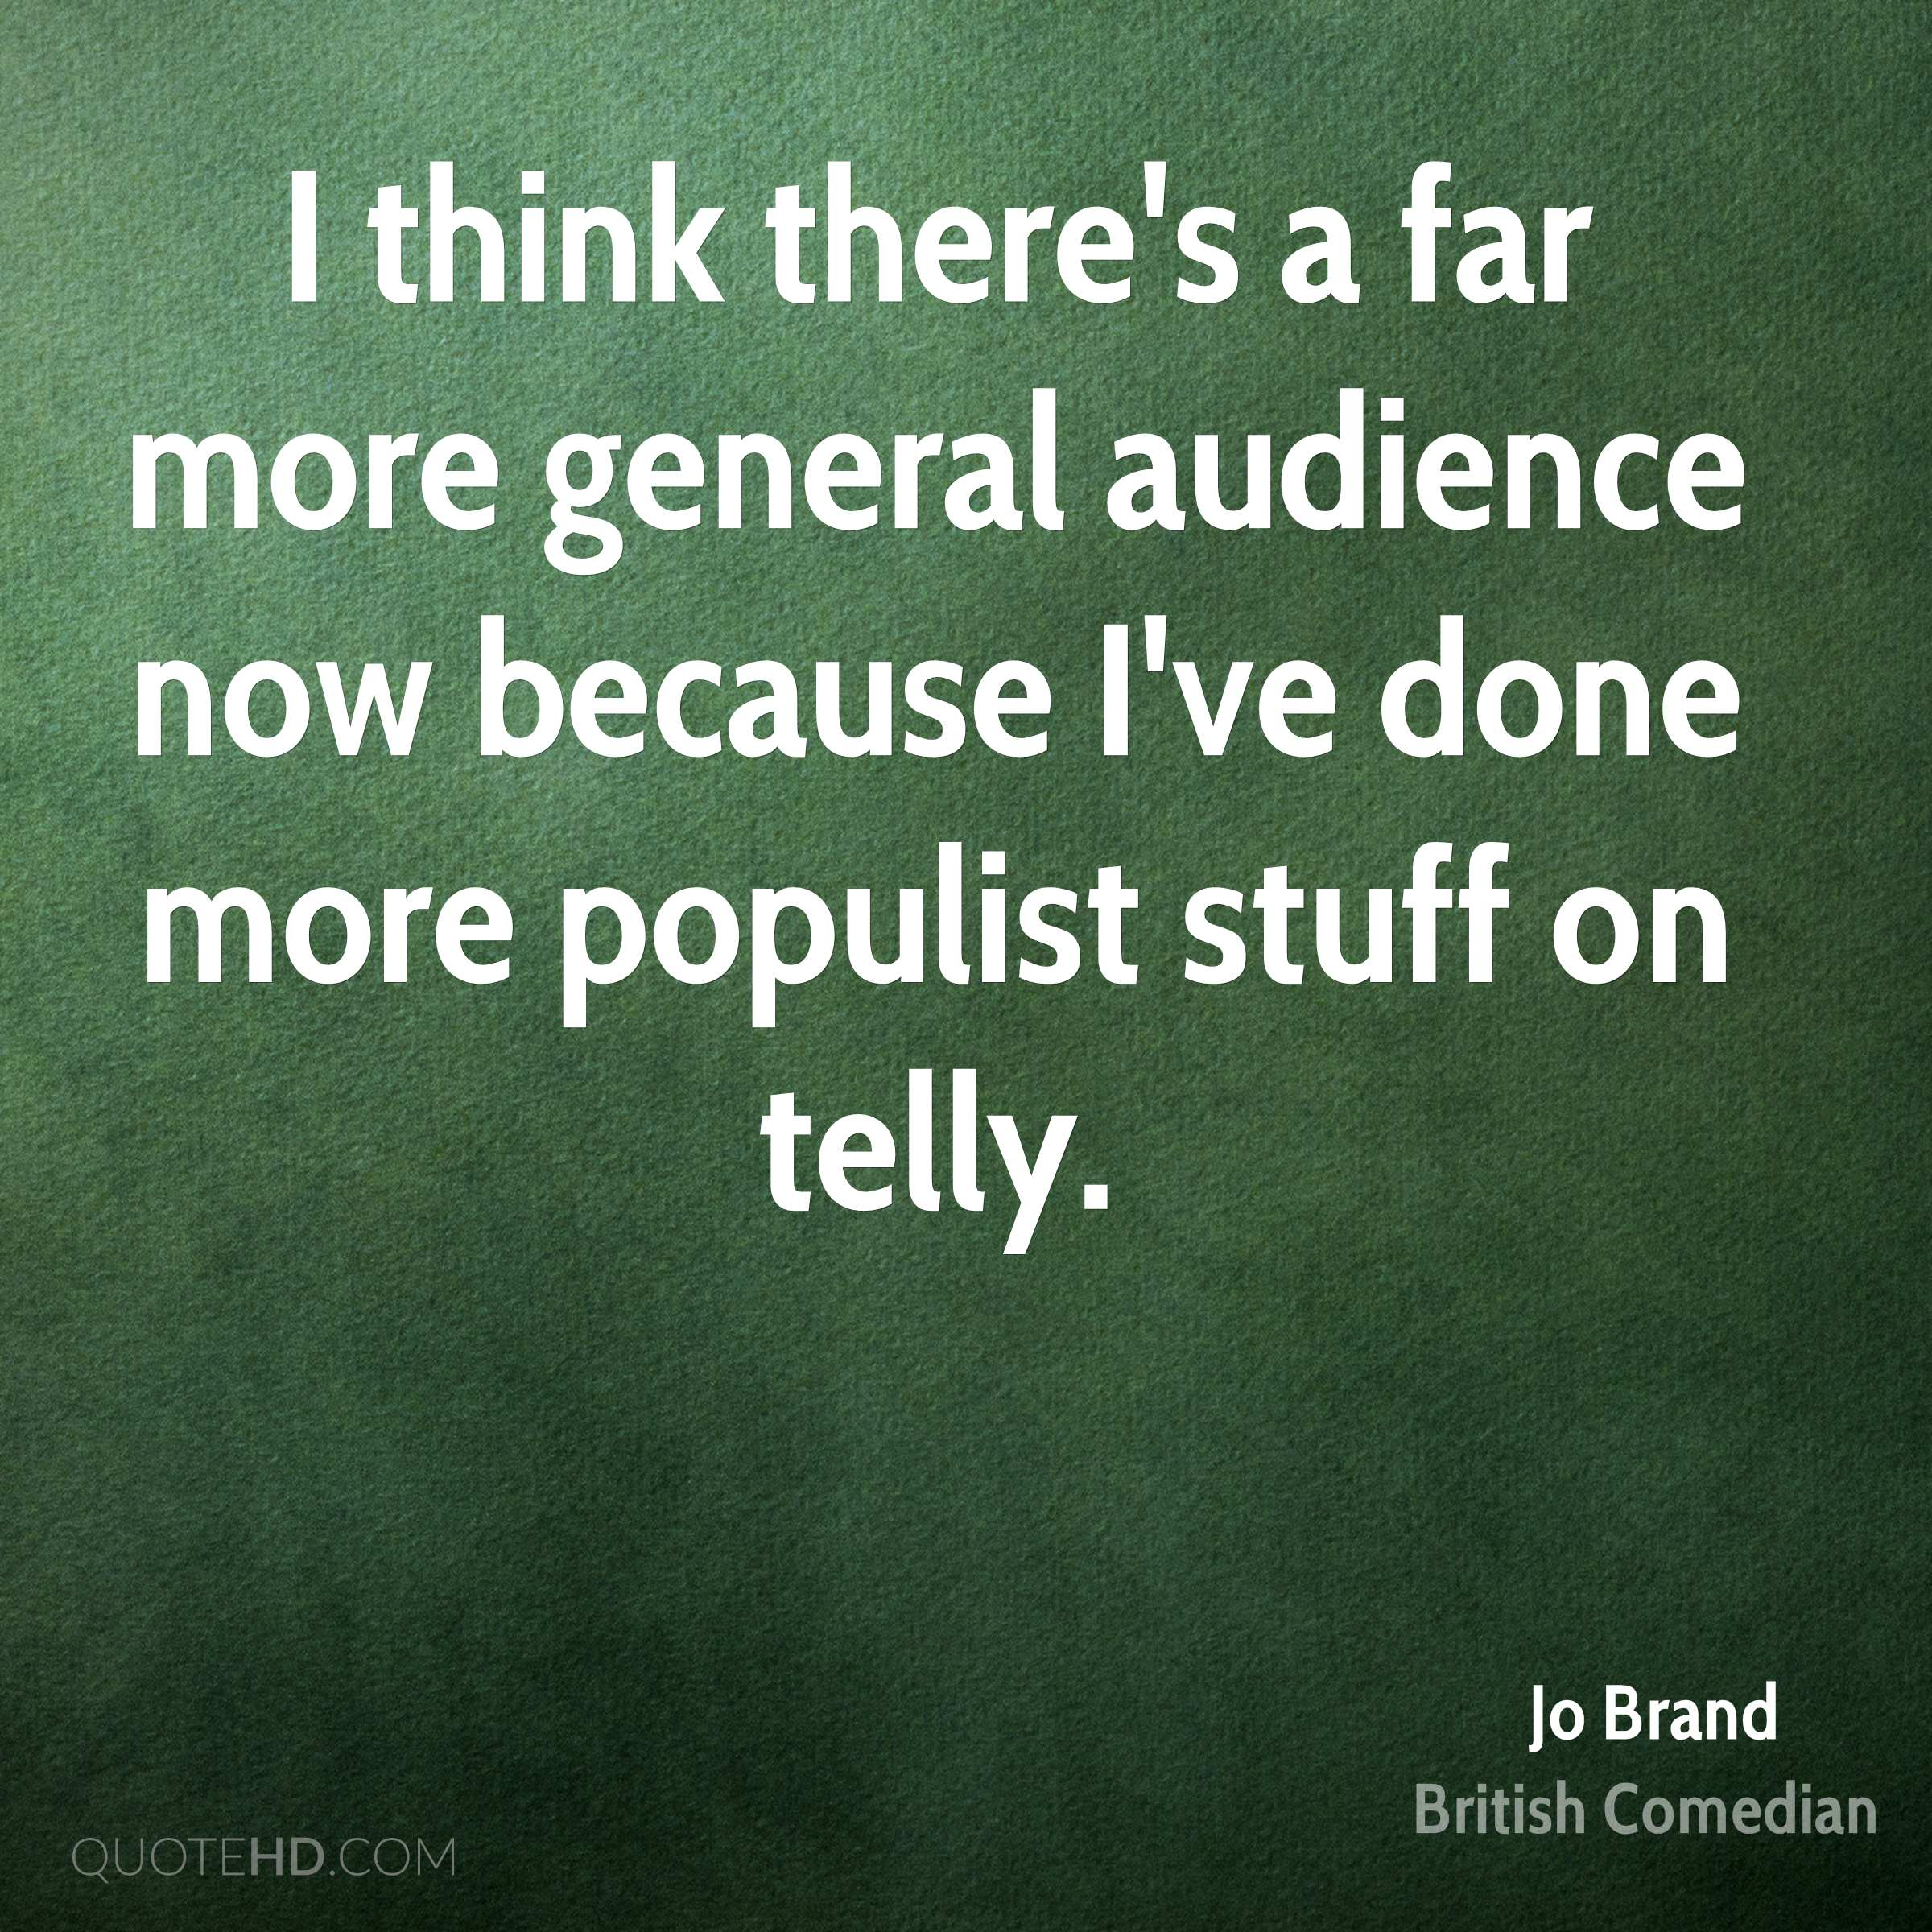 I think there's a far more general audience now because I've done more populist stuff on telly.